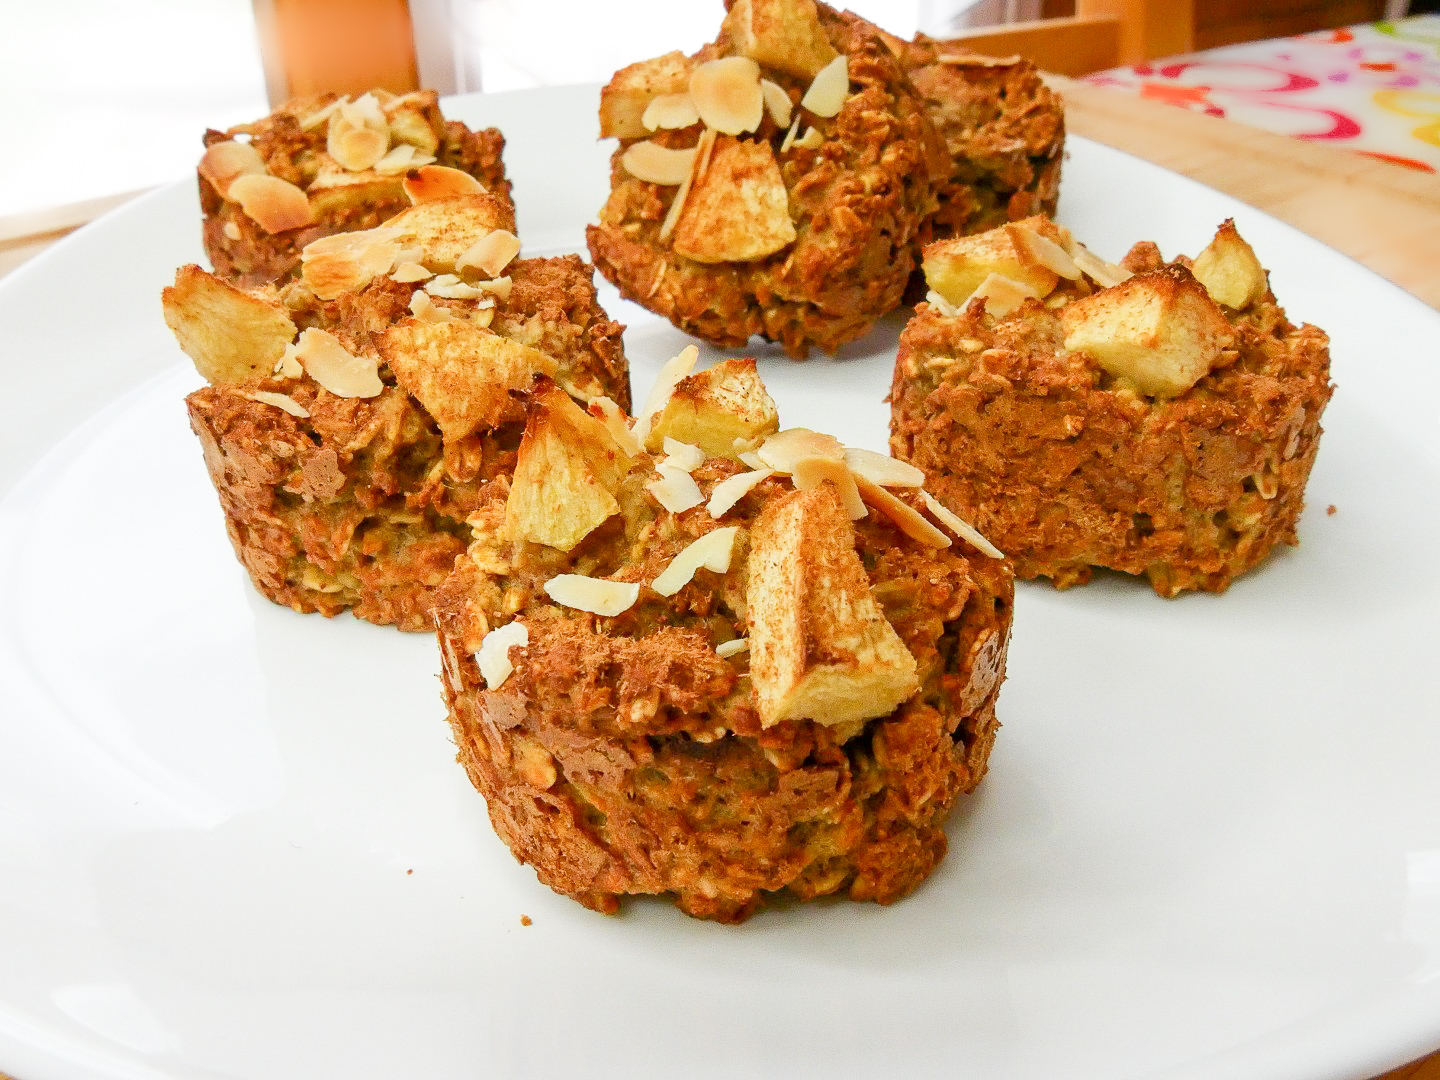 Muffins avoine pomme cannelle 3 - Muffins avoine, pomme & cannelle